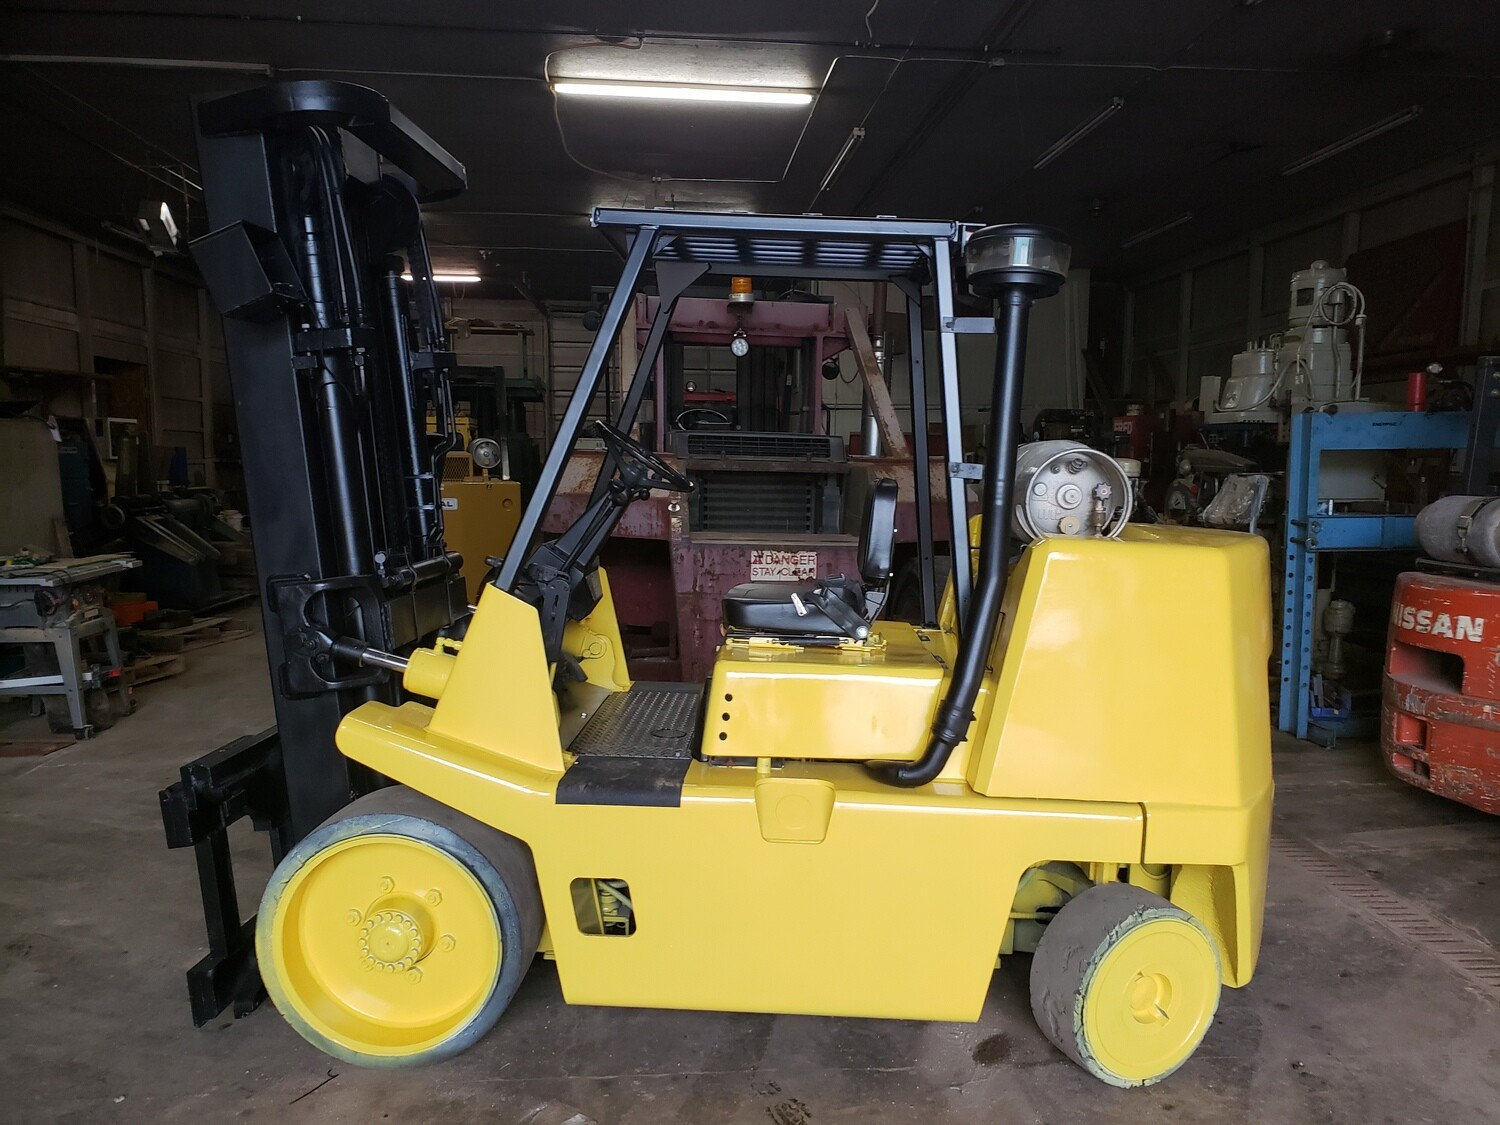 7.75 Ton Yale-Hyster Forklift For Sale